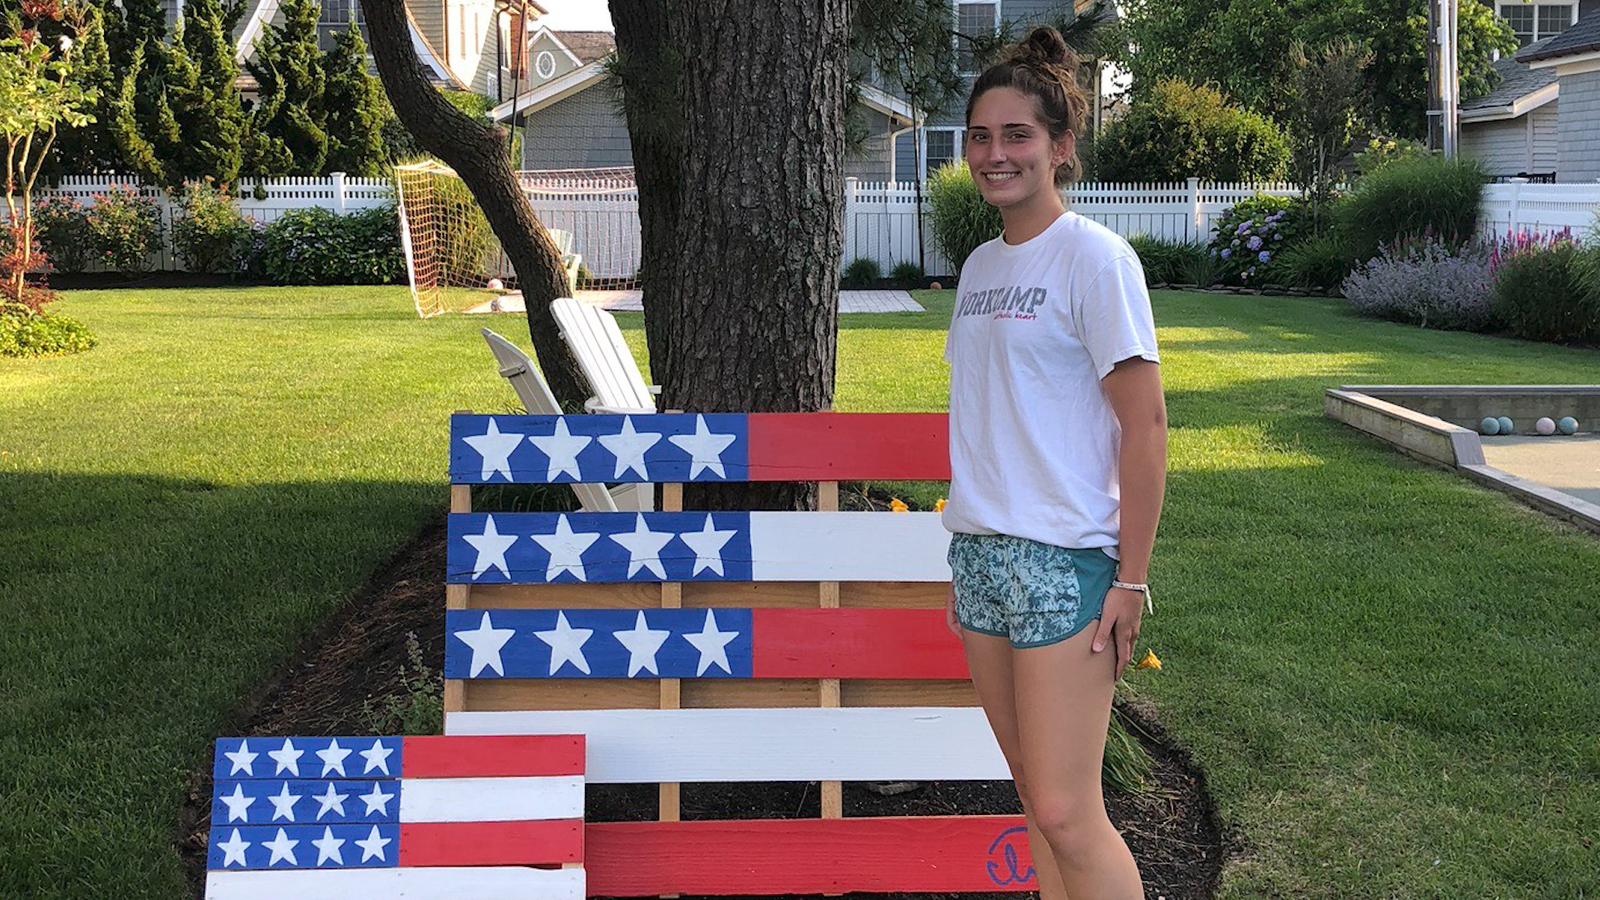 New Jersey teen transforms wooden pallets into yard signs to help families in need